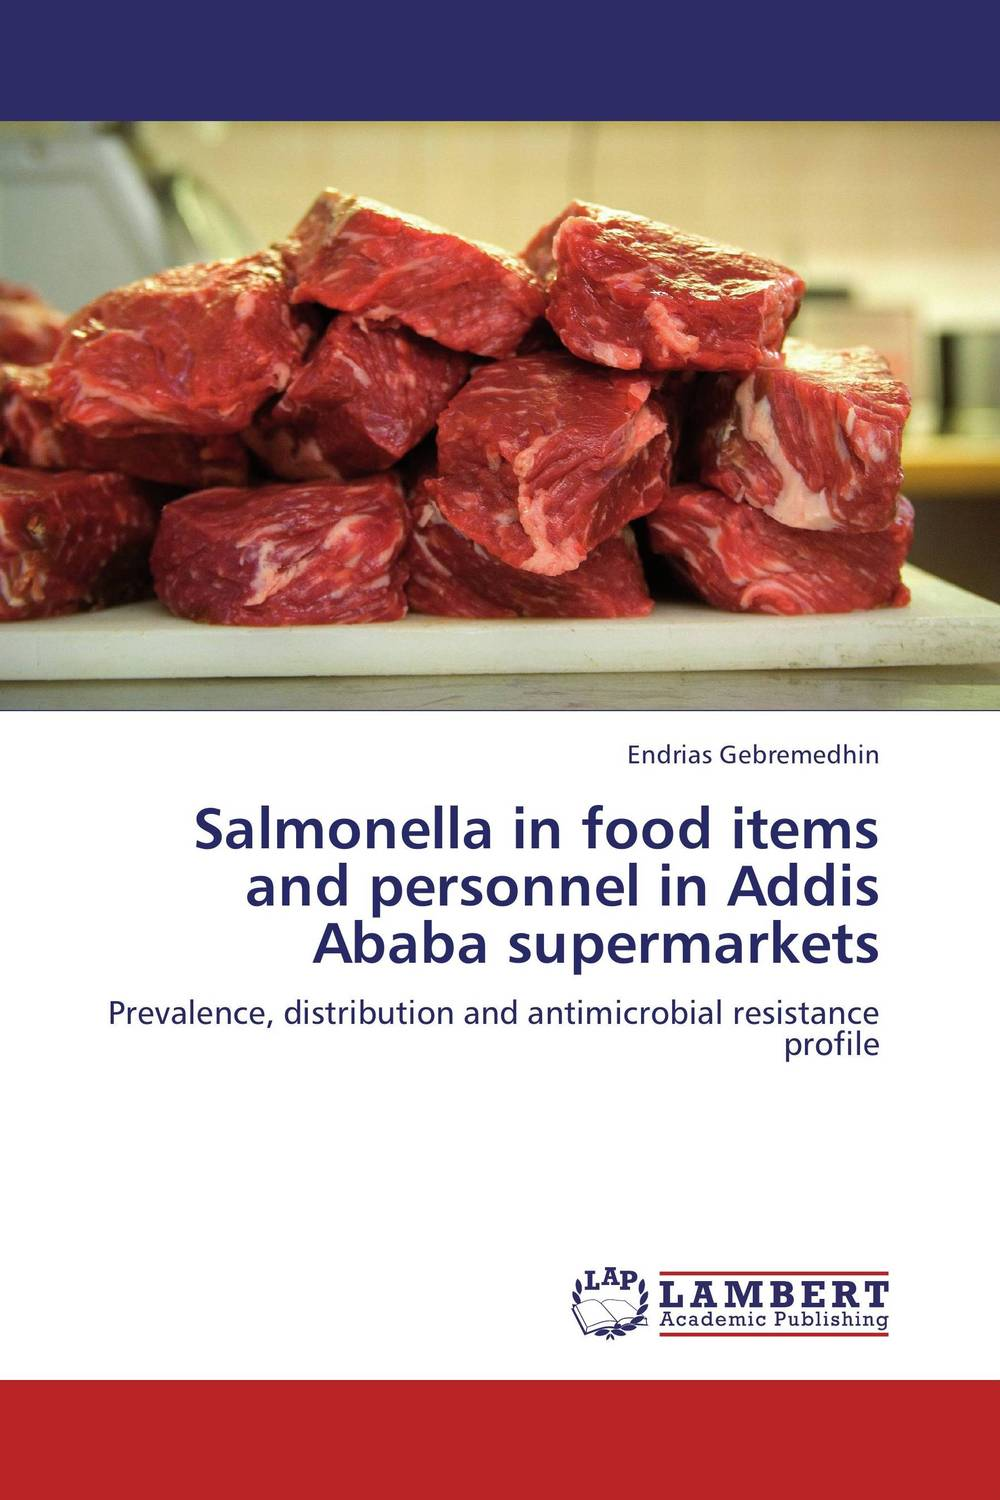 Salmonella in food items and personnel in Addis Ababa supermarkets behailu bekele eshetea antibiotic resistance in bacterial isolates from food animals